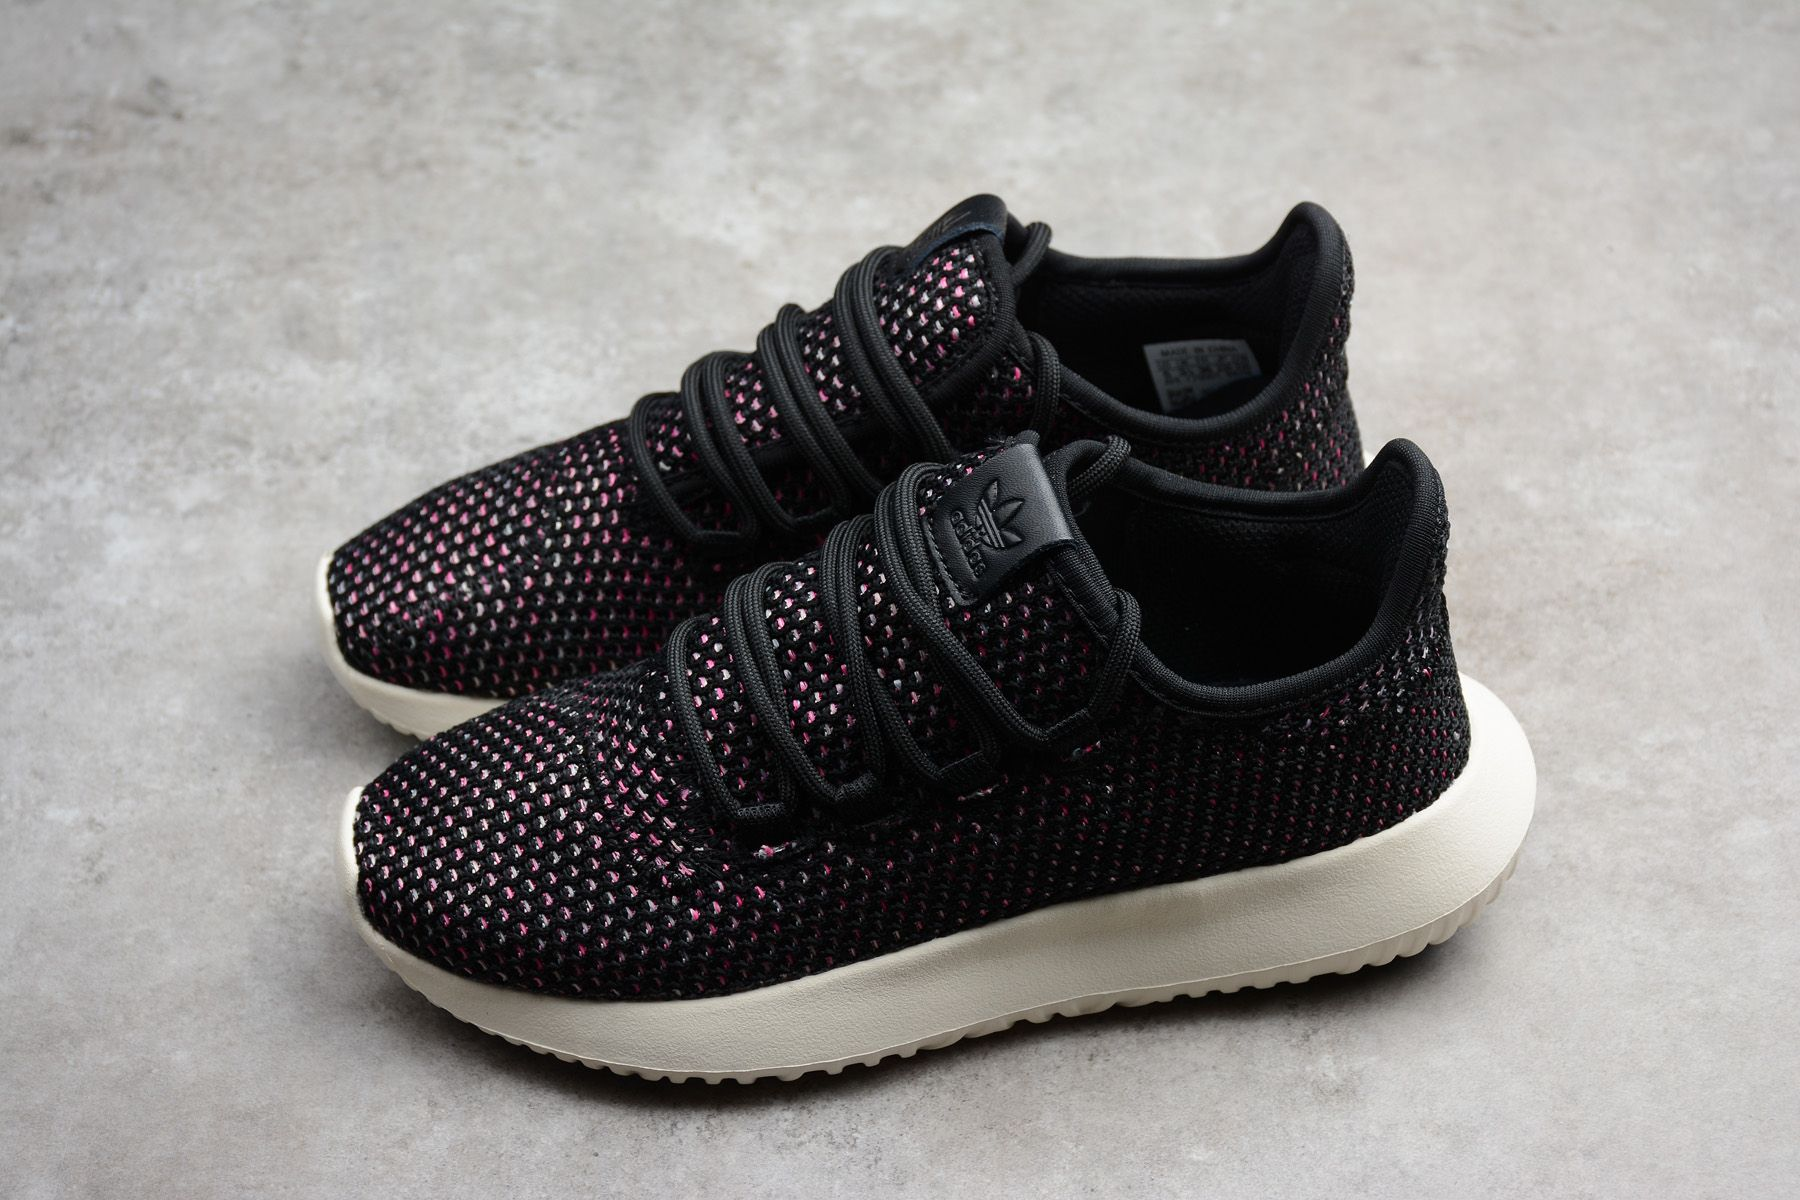 1721a3fe6f44a New adidas Originals Tubular Shadow CK Black/White-Pink AQ0886 ...